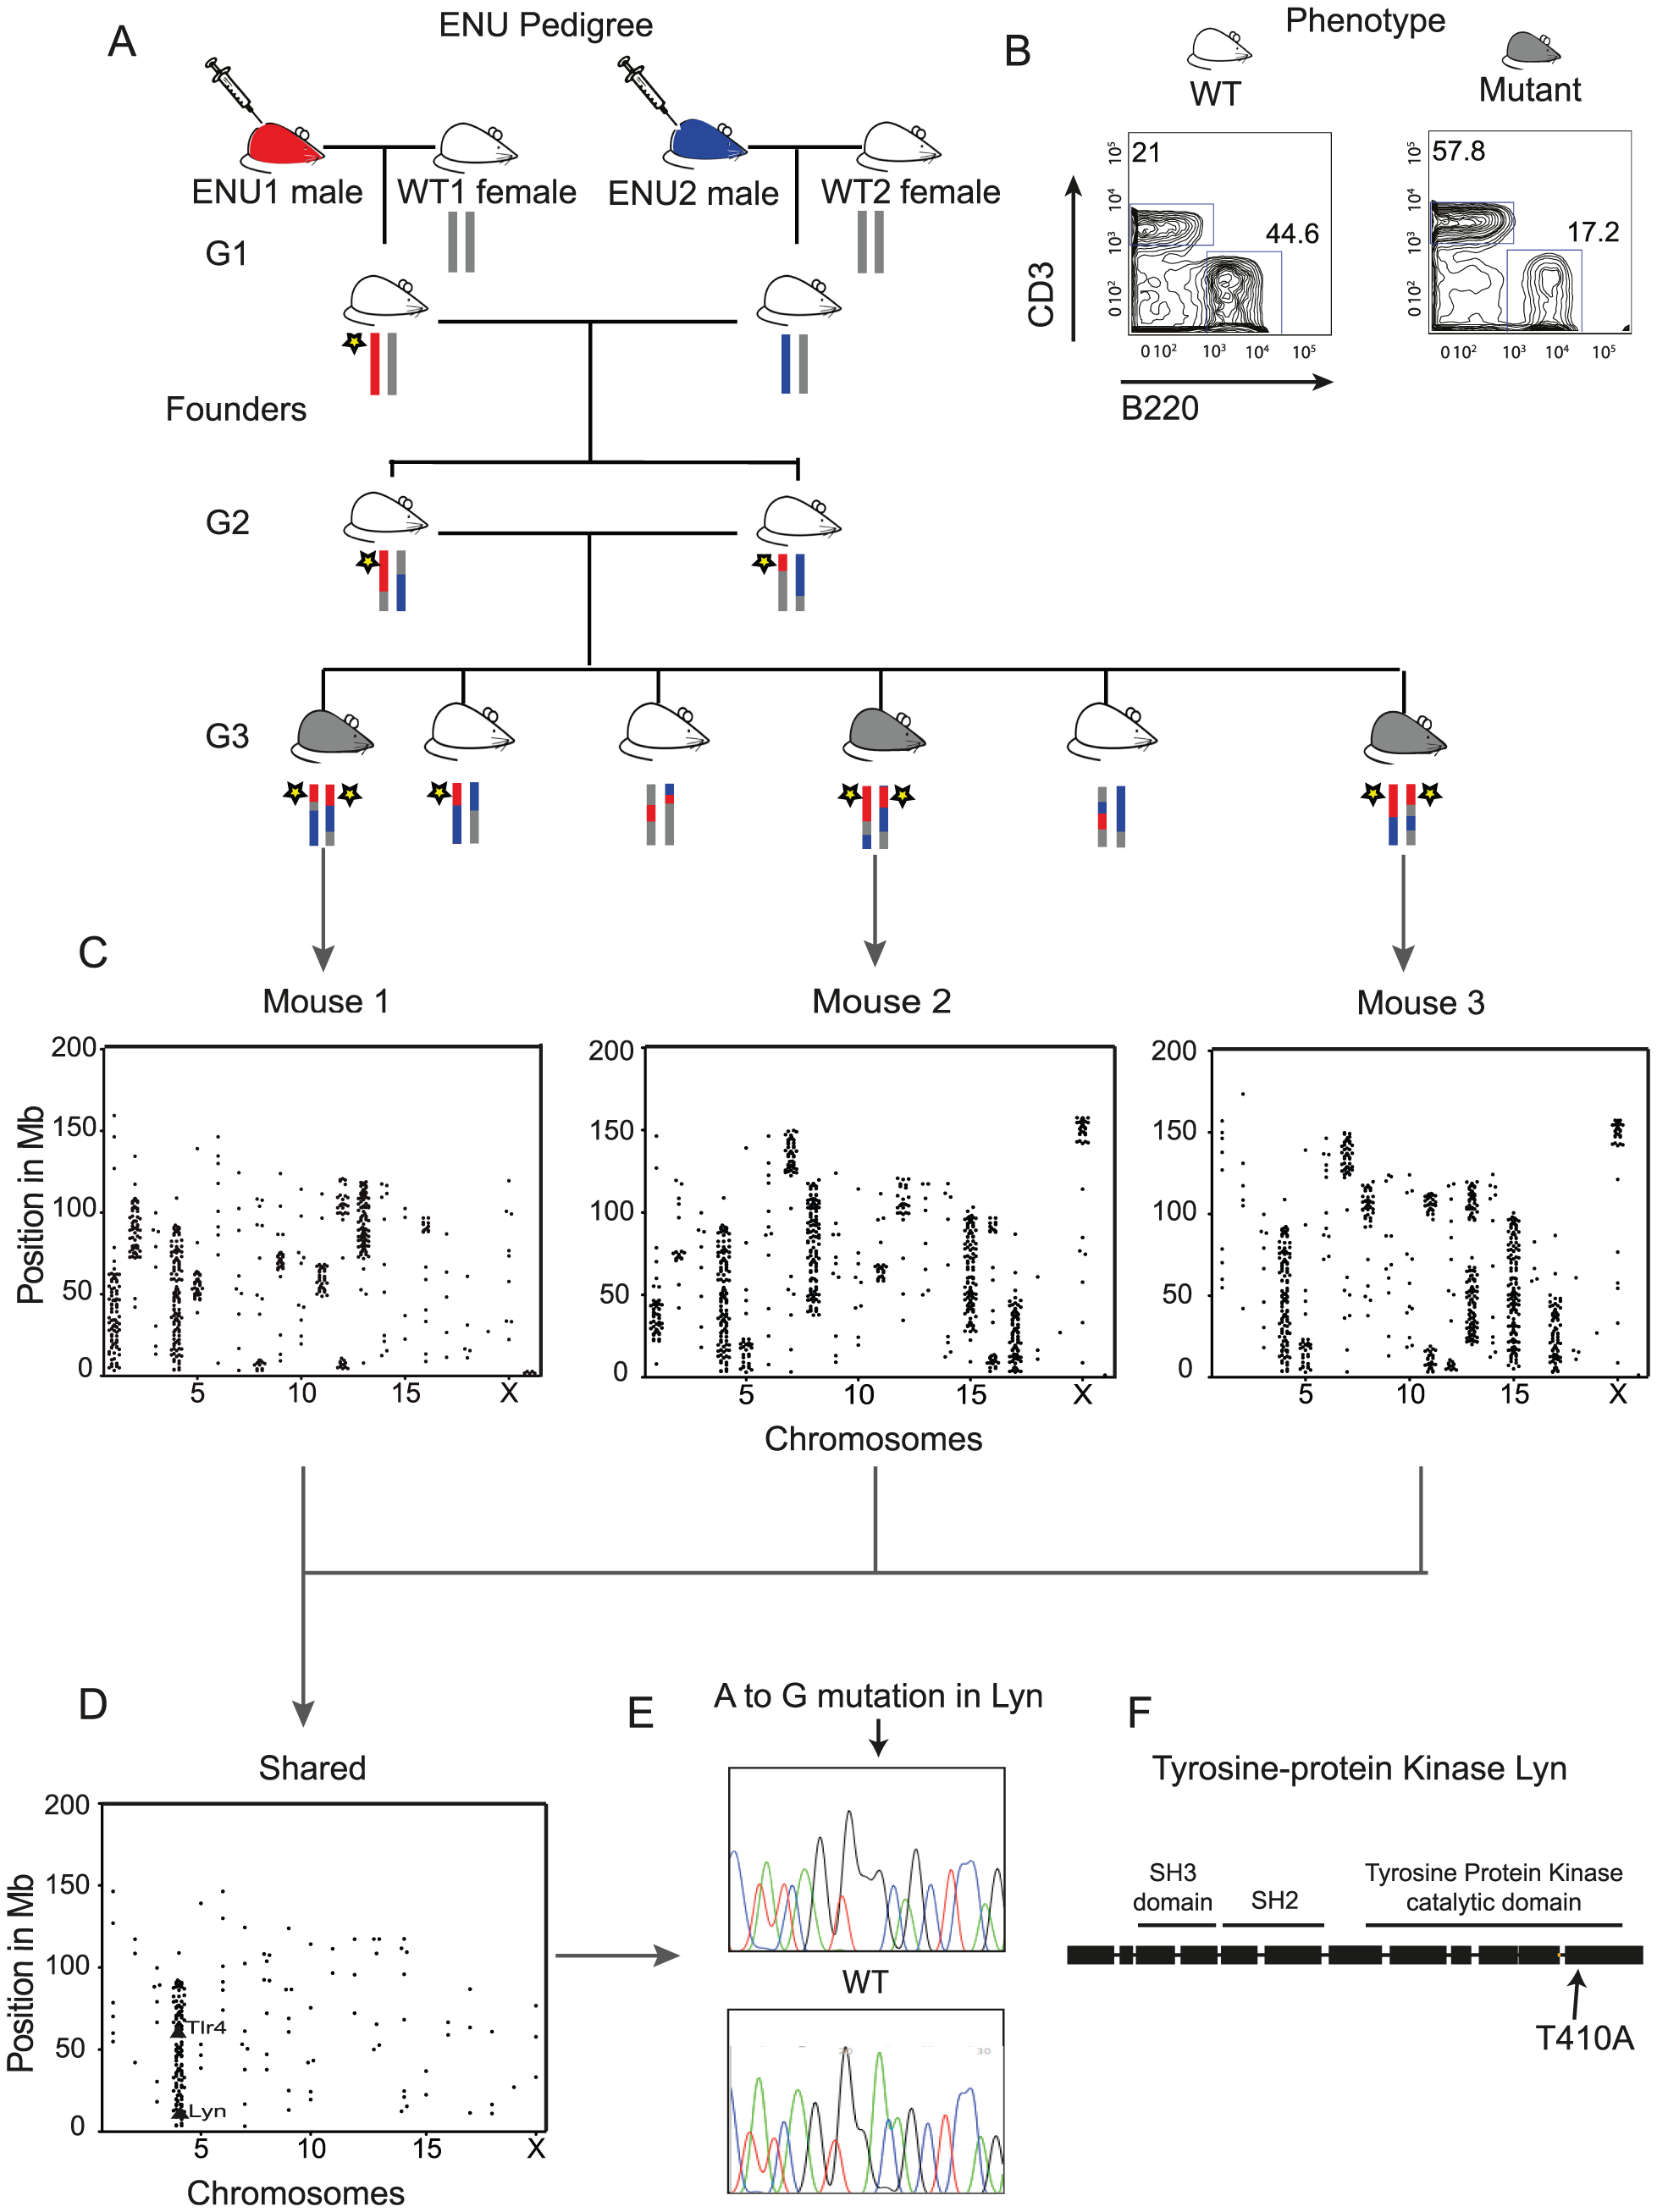 Whole-Genome Sequencing Identifies the IBD Homozygous Region and Causative ENU Mutation.